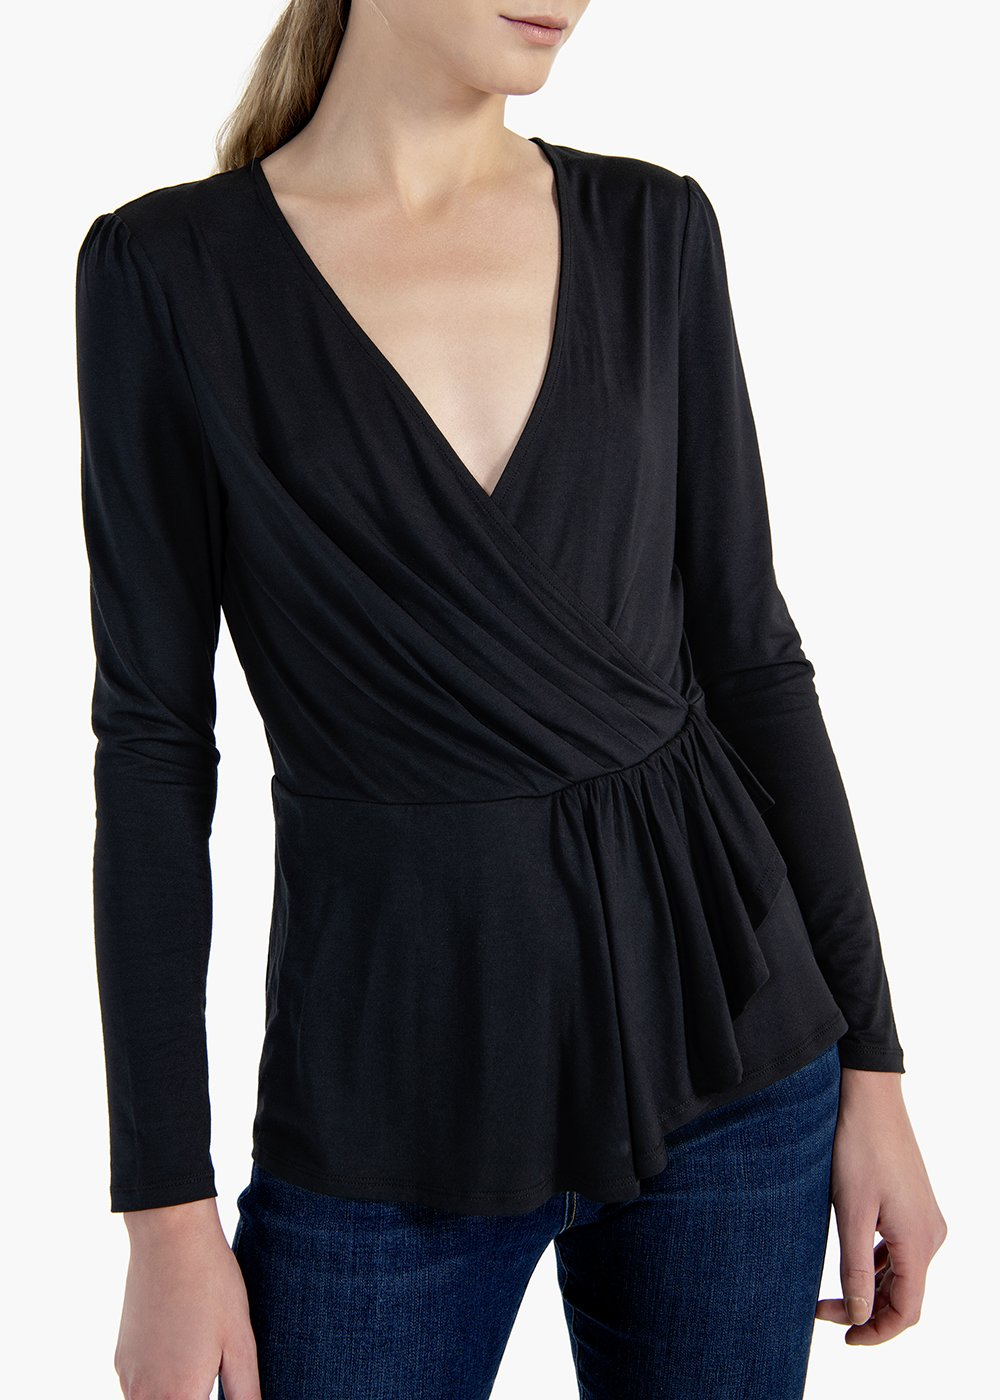 T-shirt in viscose jersey Stefy with crossover neckline